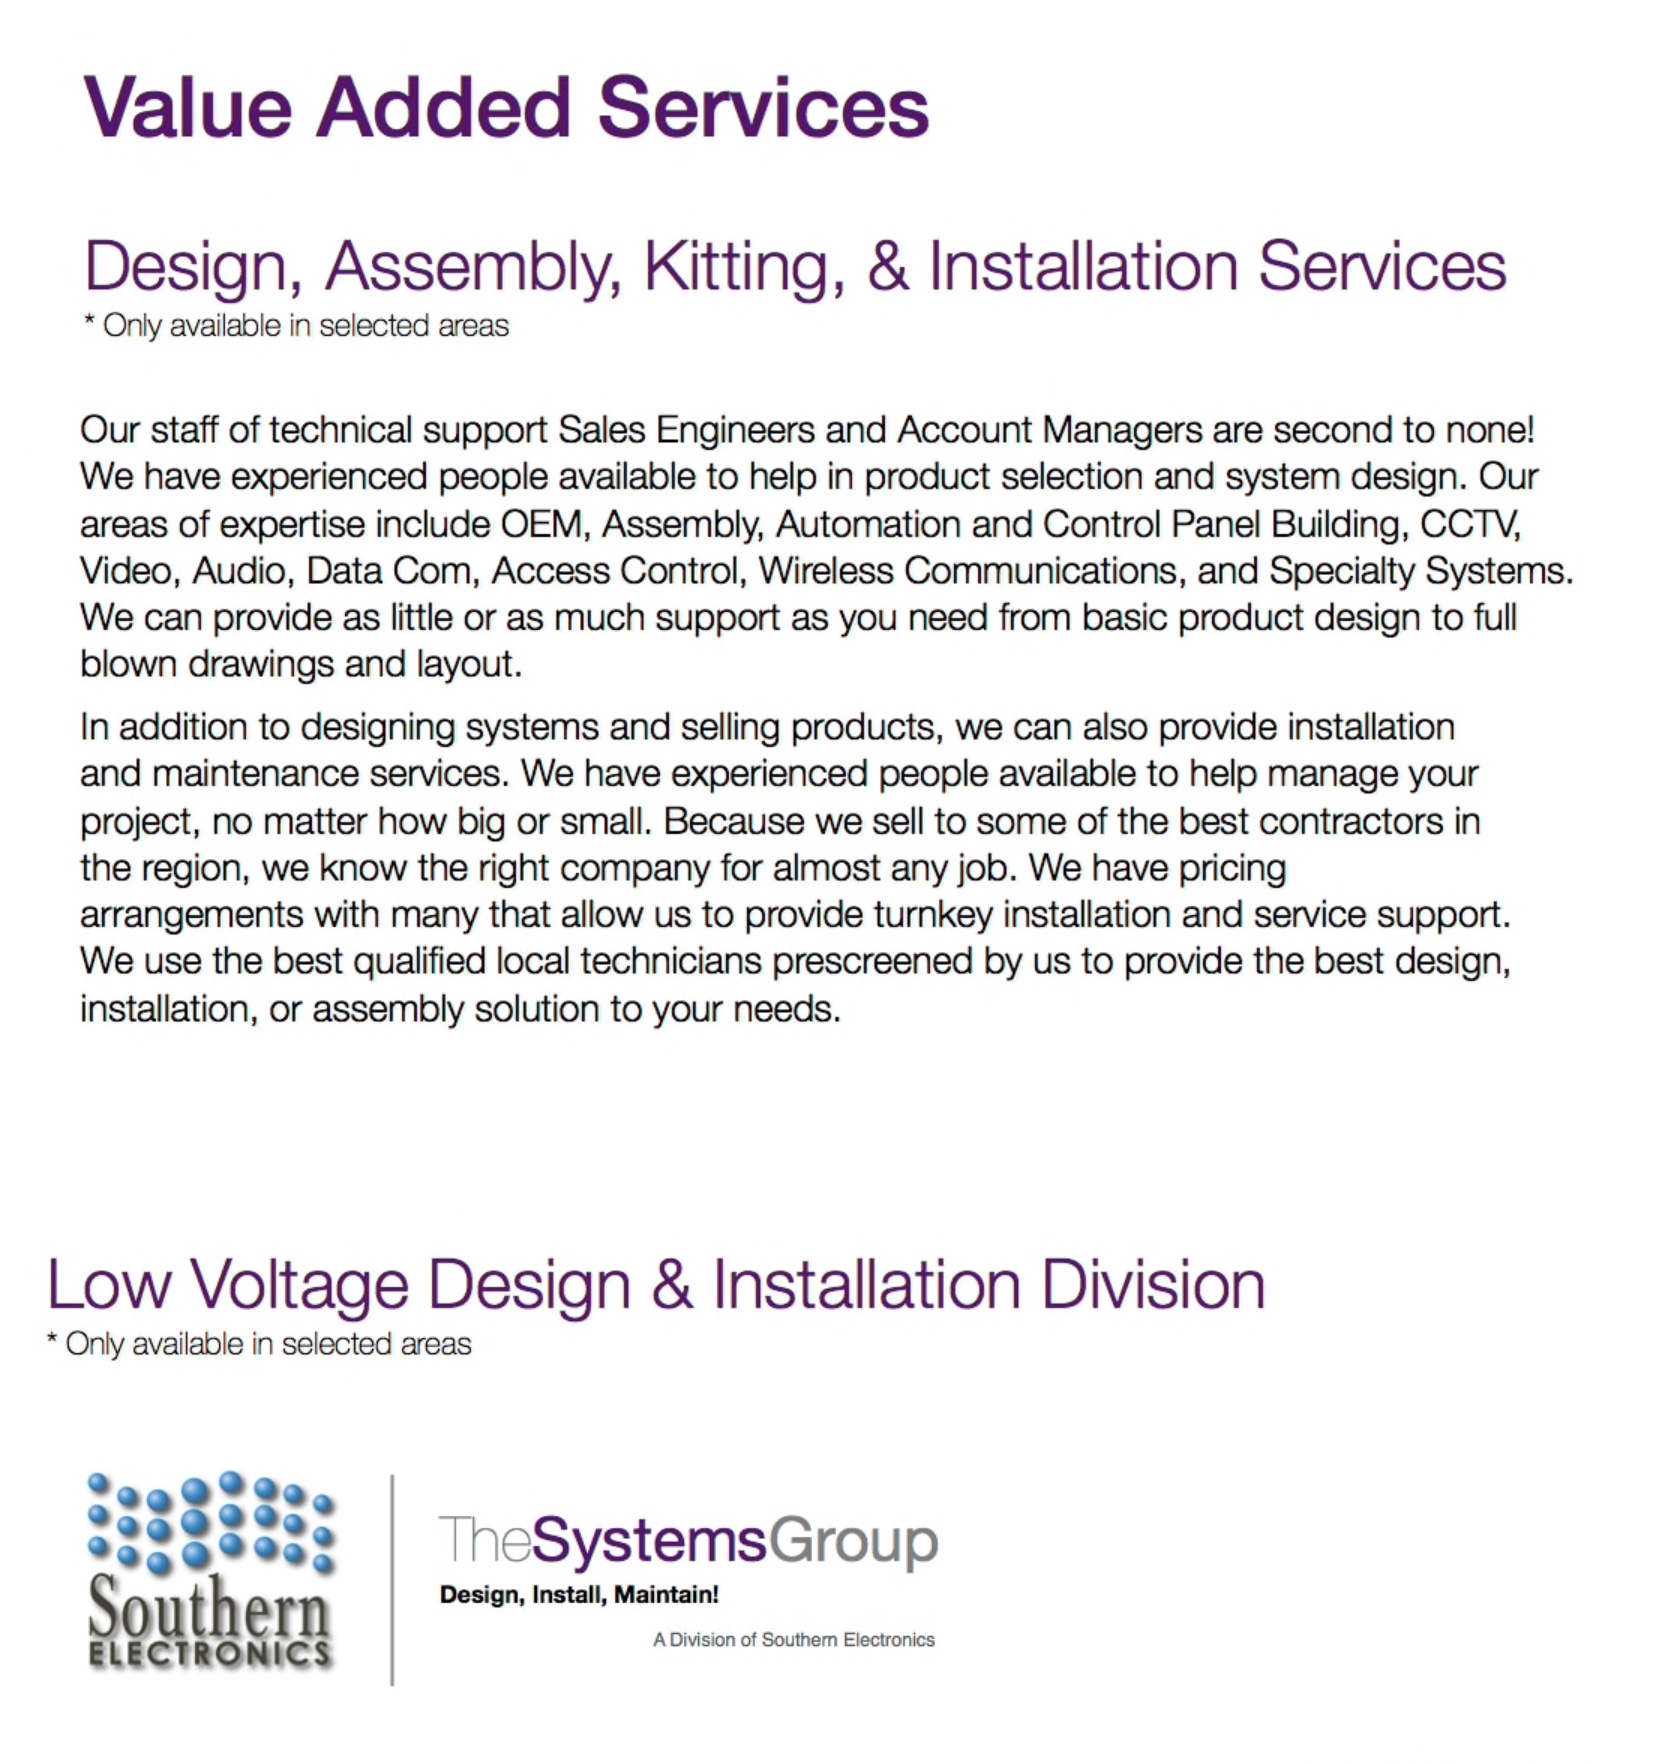 value-added-services-top.jpeg